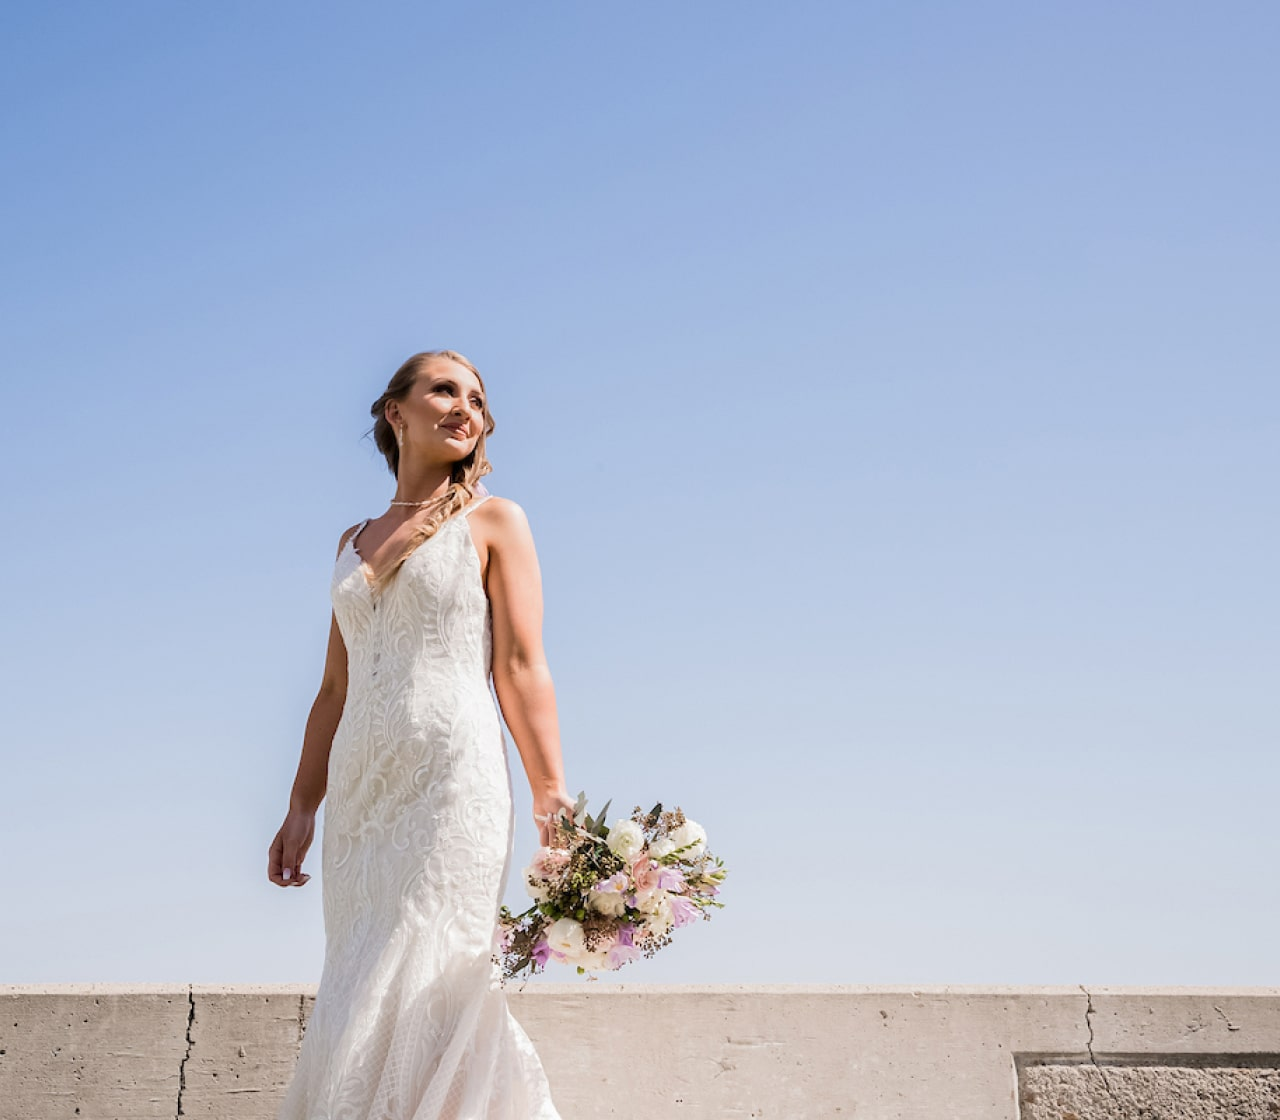 Buying and reselling a pre-owned wedding dress